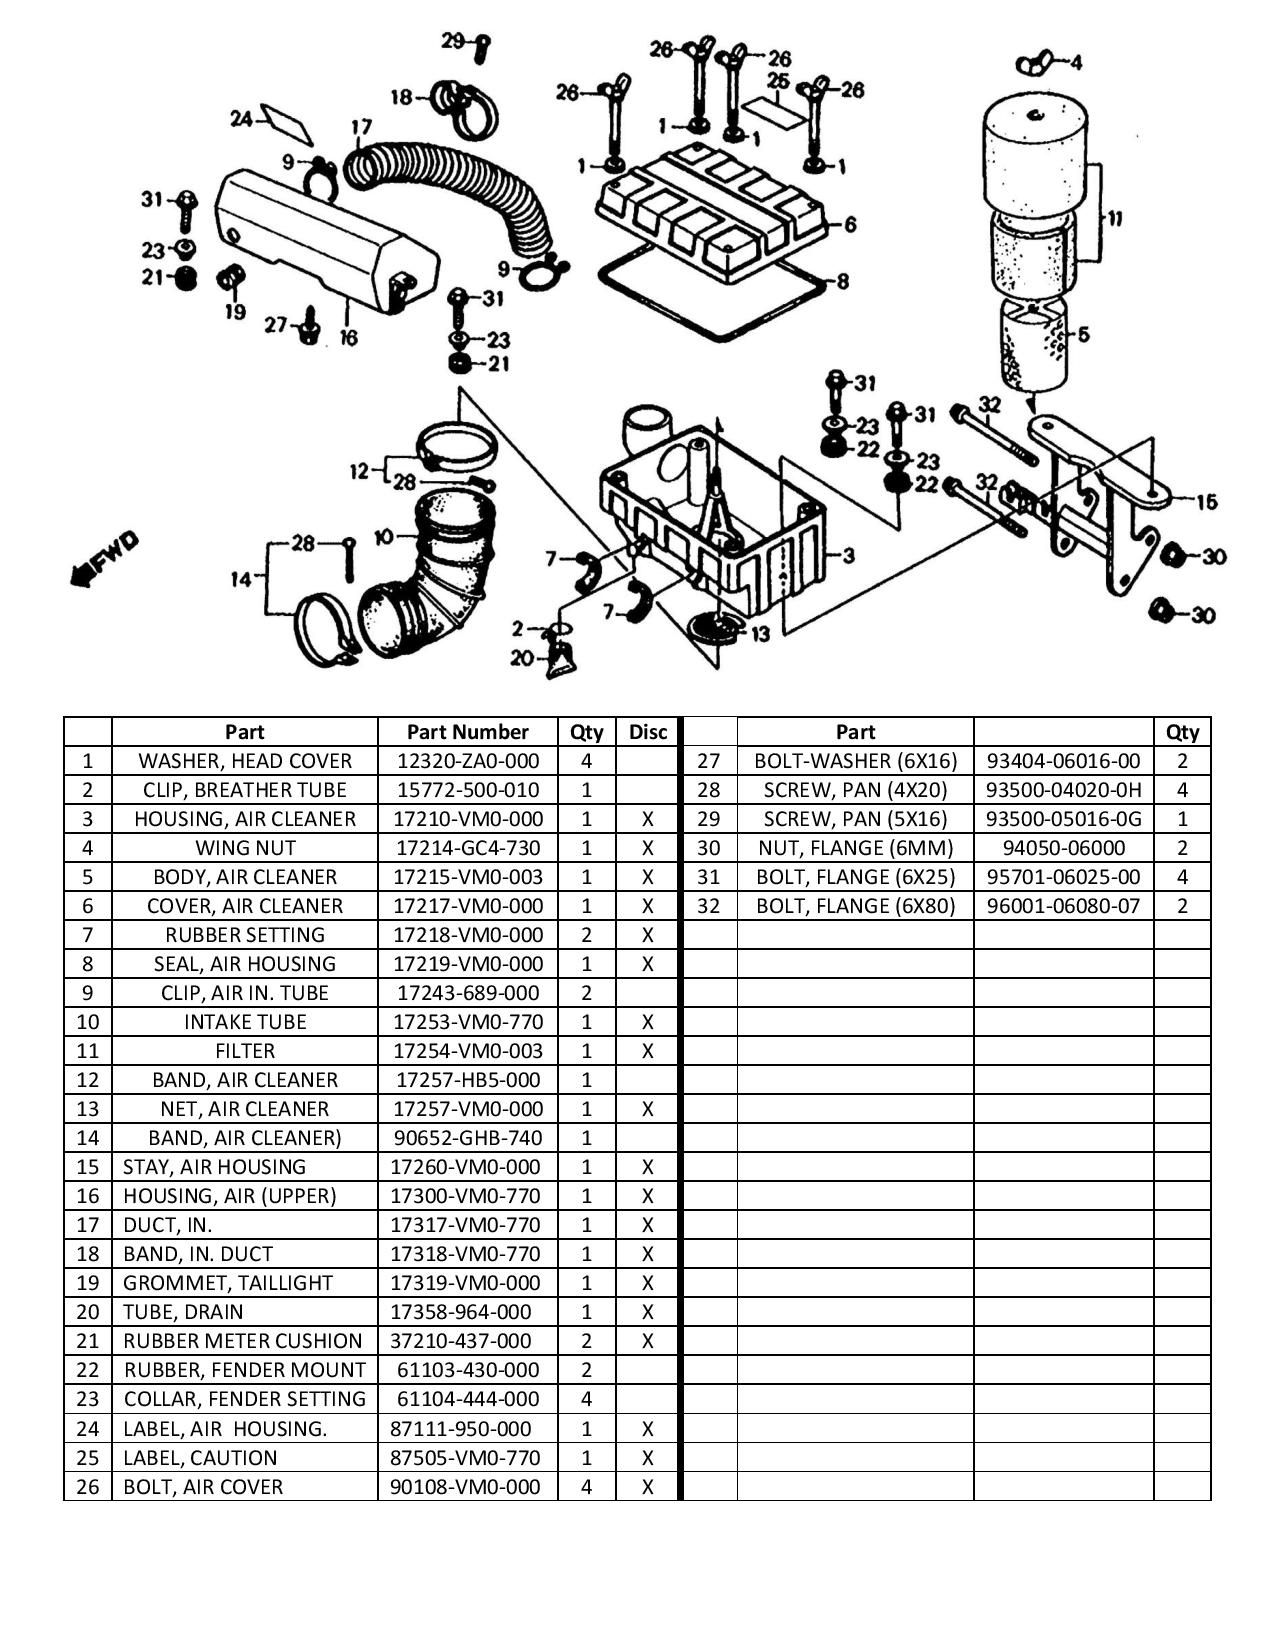 Honda Odyssey Diagram Electrical Schematics Trailer Wiring Fl350 Air Intake And Parts List Chevy Suburban